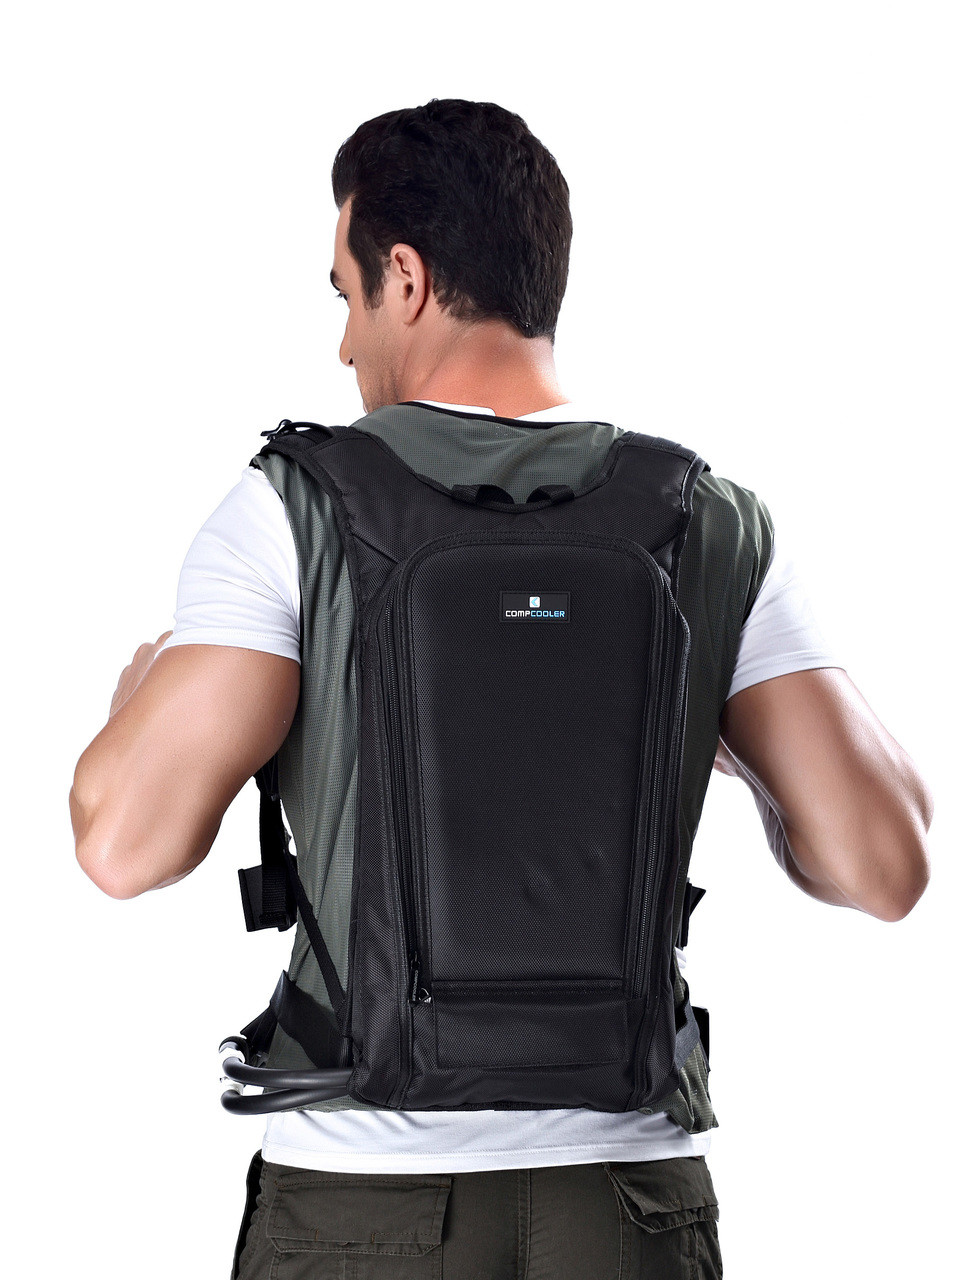 Personal-Microclimate-Body-Cooling-Vest-with-backpack-2018-detachable-Bladder